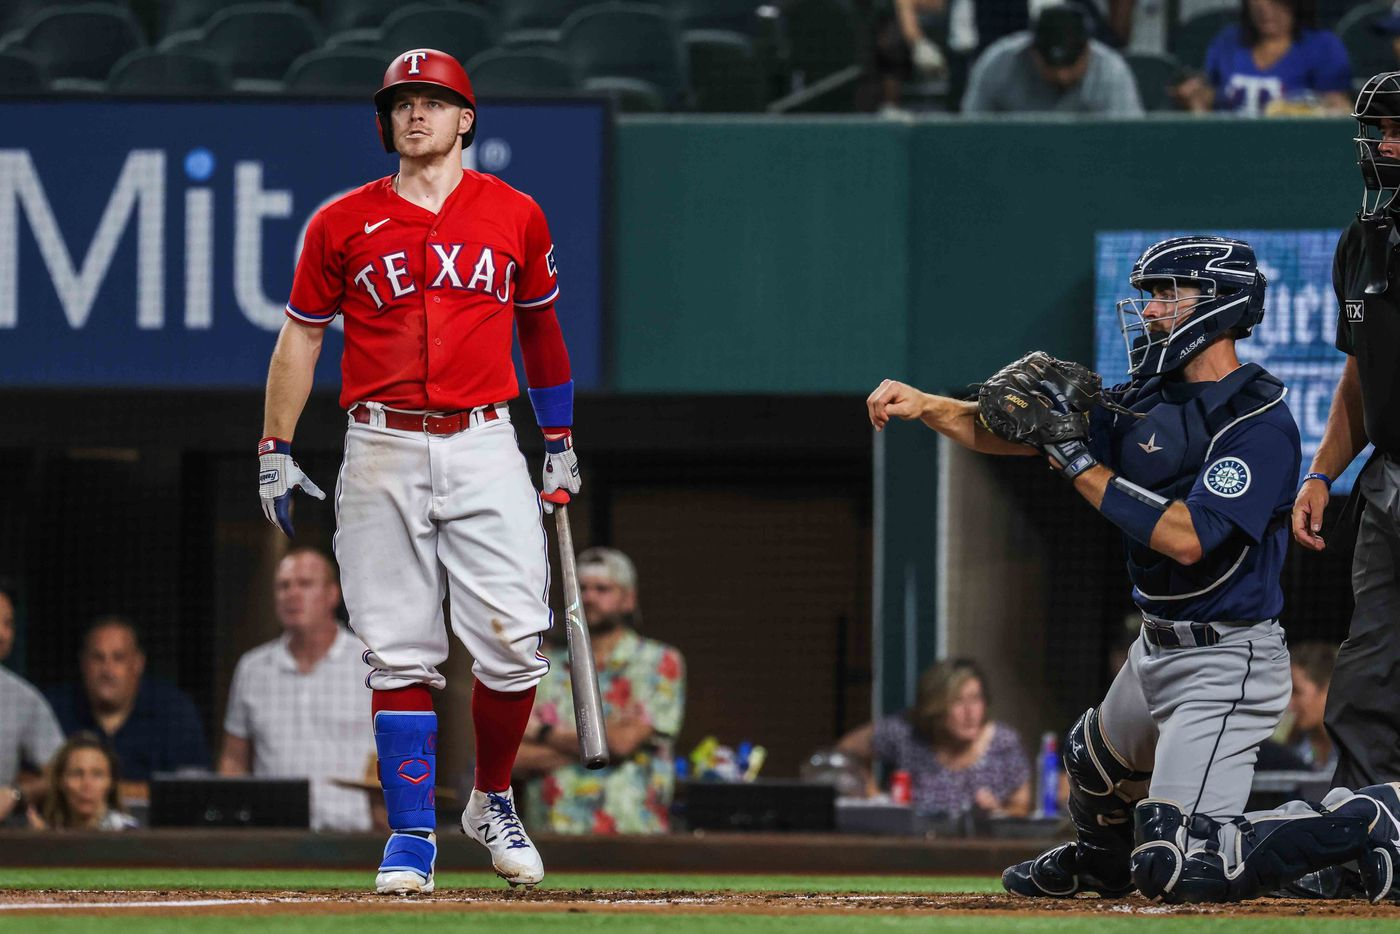 Texas Rangers Brock Holt (16) reacts after his second strike against Seattle Mariners during the first inning at Globe Life Field in Arlington, Texas, Friday, July 30, 2021. (Lola Gomez/The Dallas Morning News)